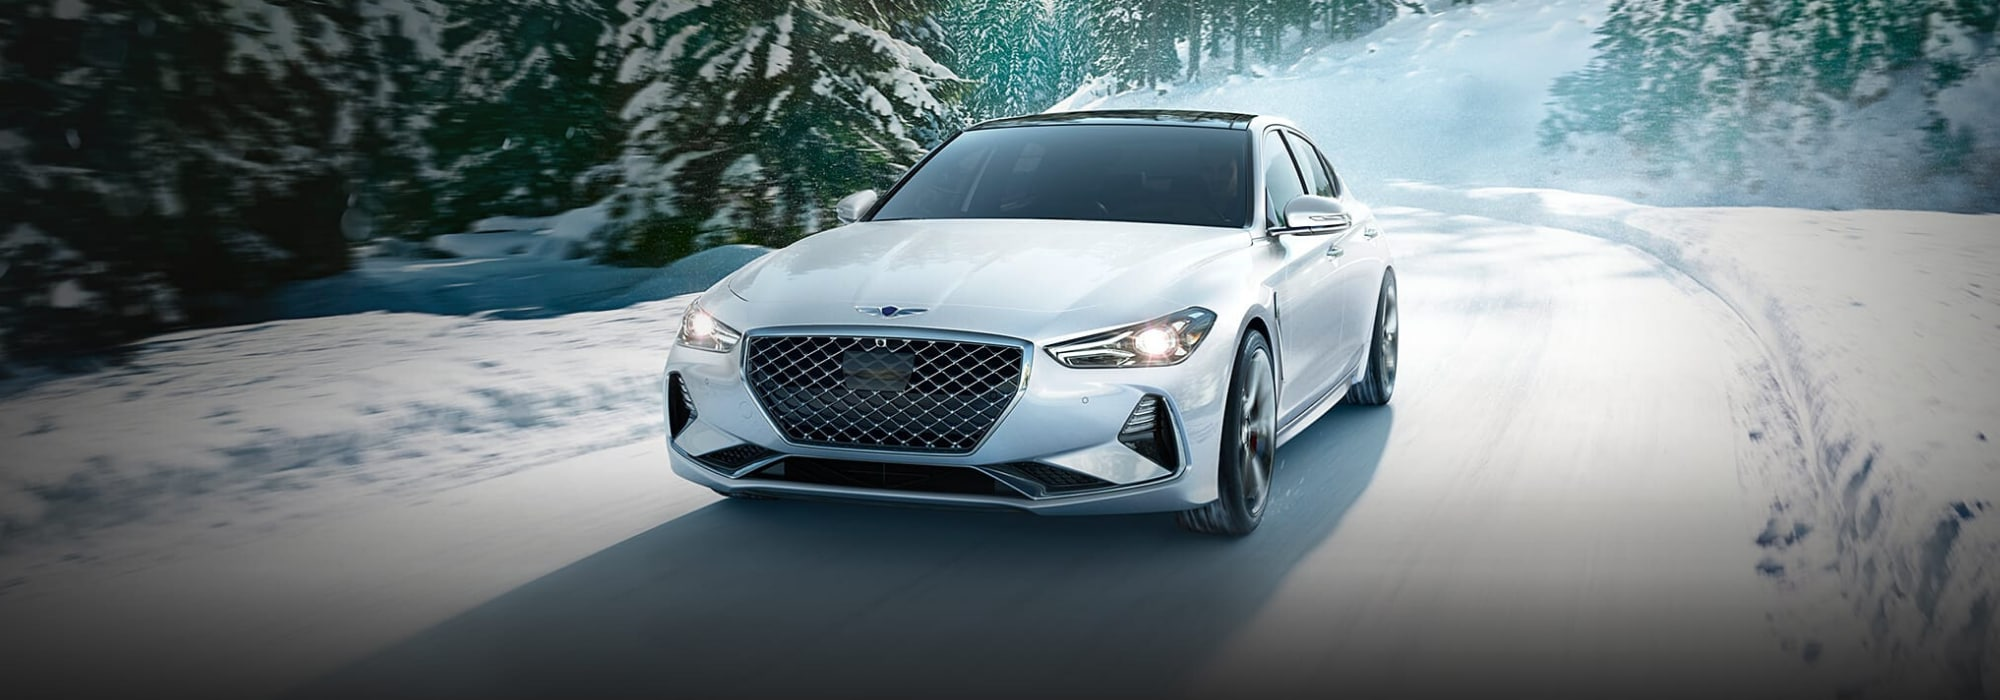 New 2020 Genesis G70 Luxury Sedan hero image